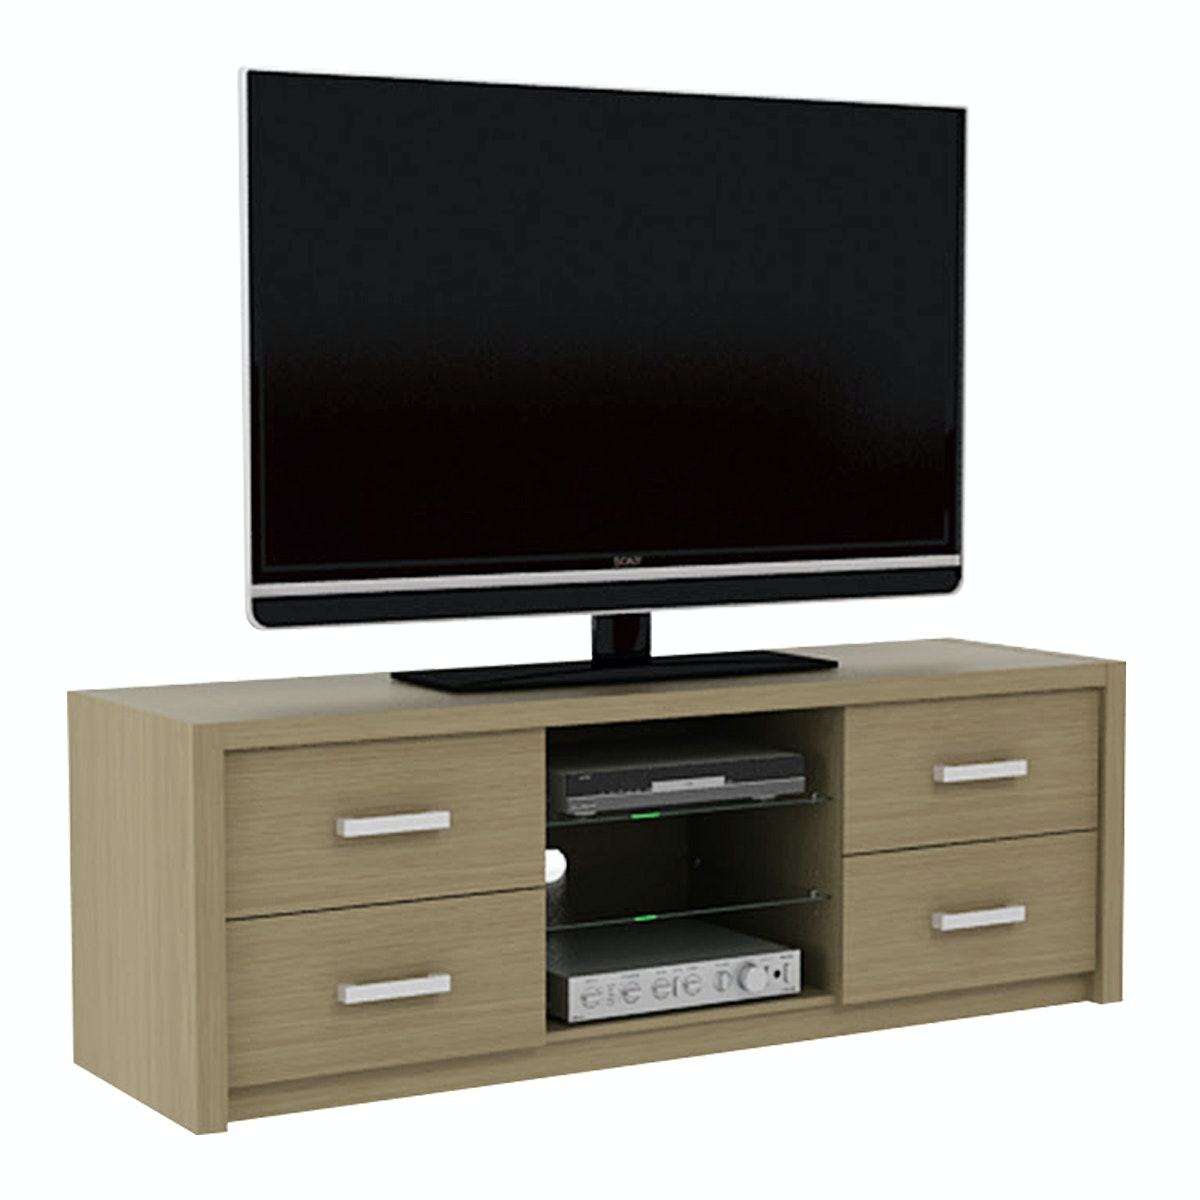 Pro Design Batavia Rak TV 2 Rak 4 Laci - Home Oak